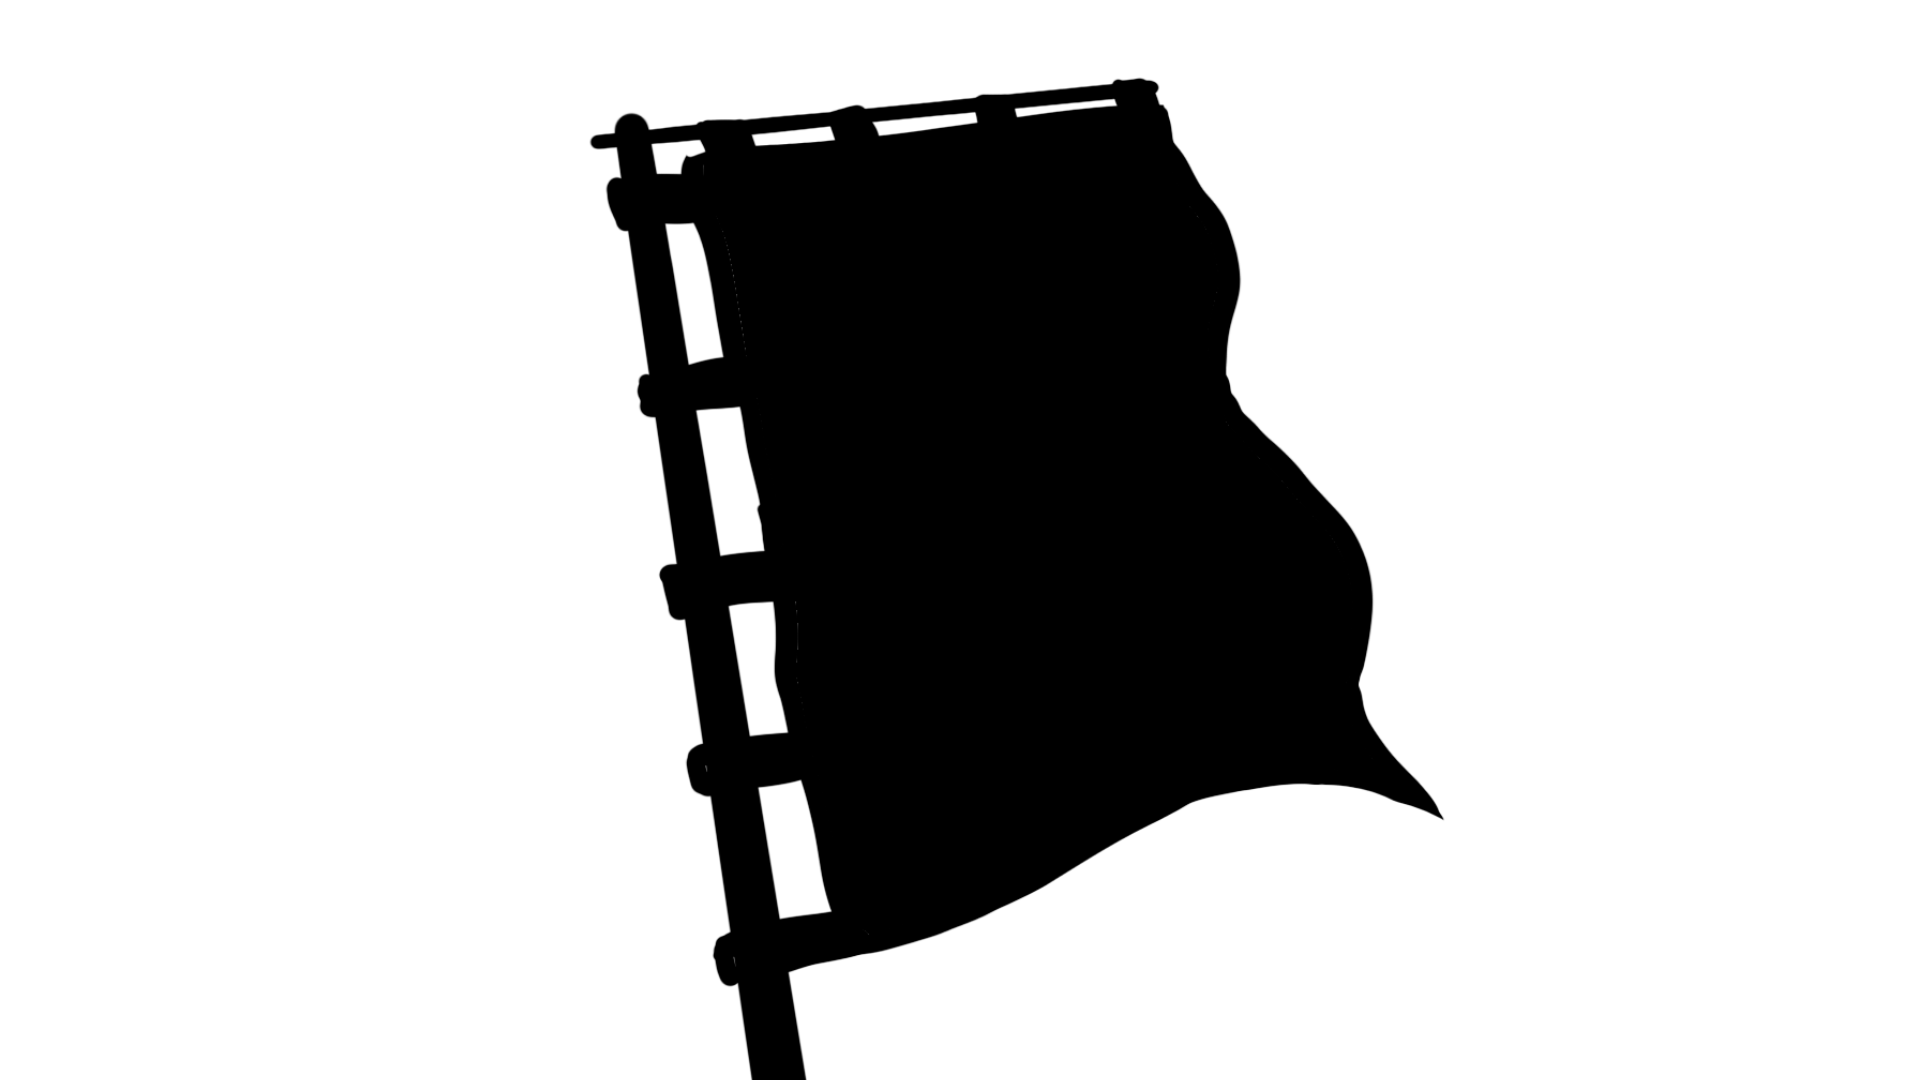 Icon for All Your Flag Are Belong To Us